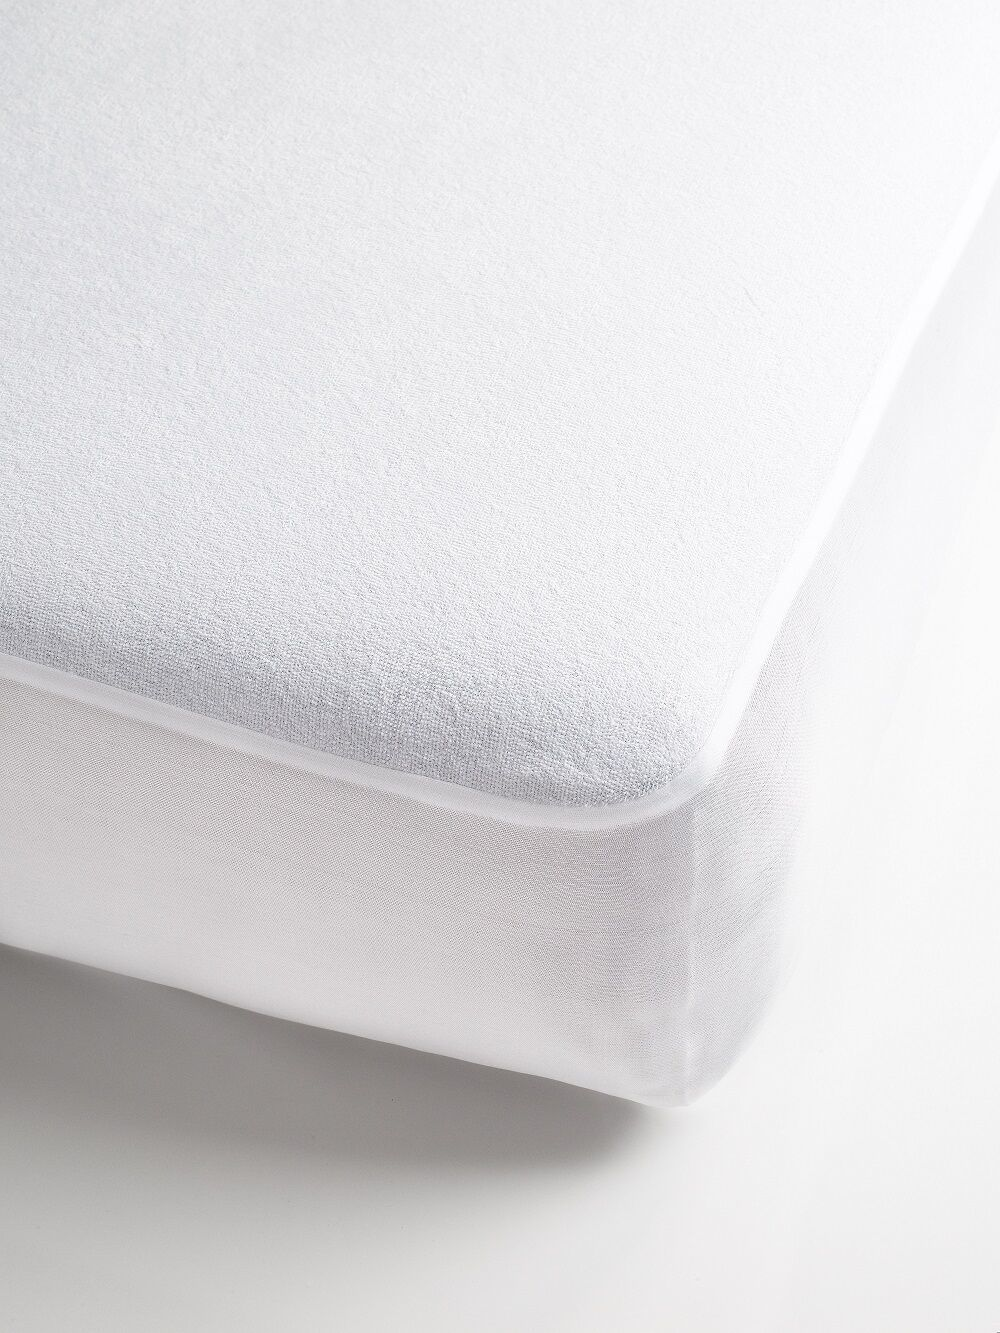 Brolly Sheets: Waterproof Towelling Mattress Protector - King image